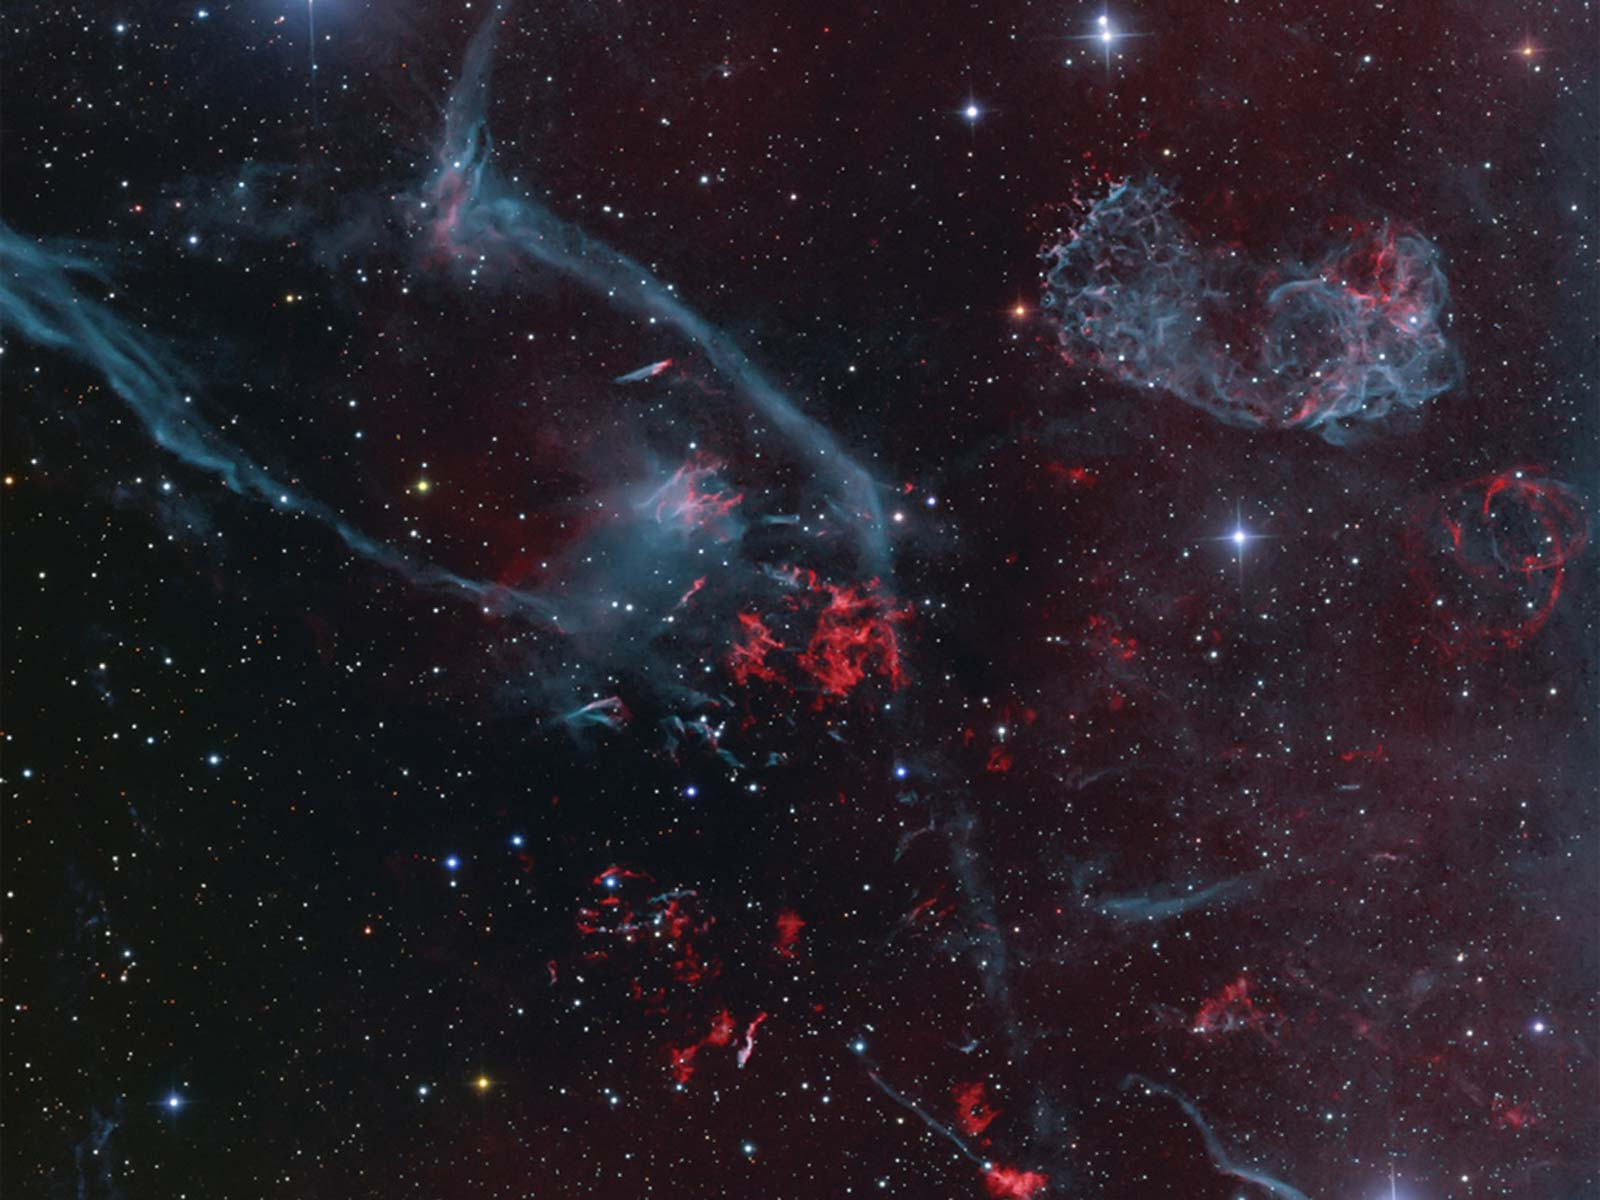 Explosions Exude Elegance: Supernova Remnant Puppis A | Space Wallpaper